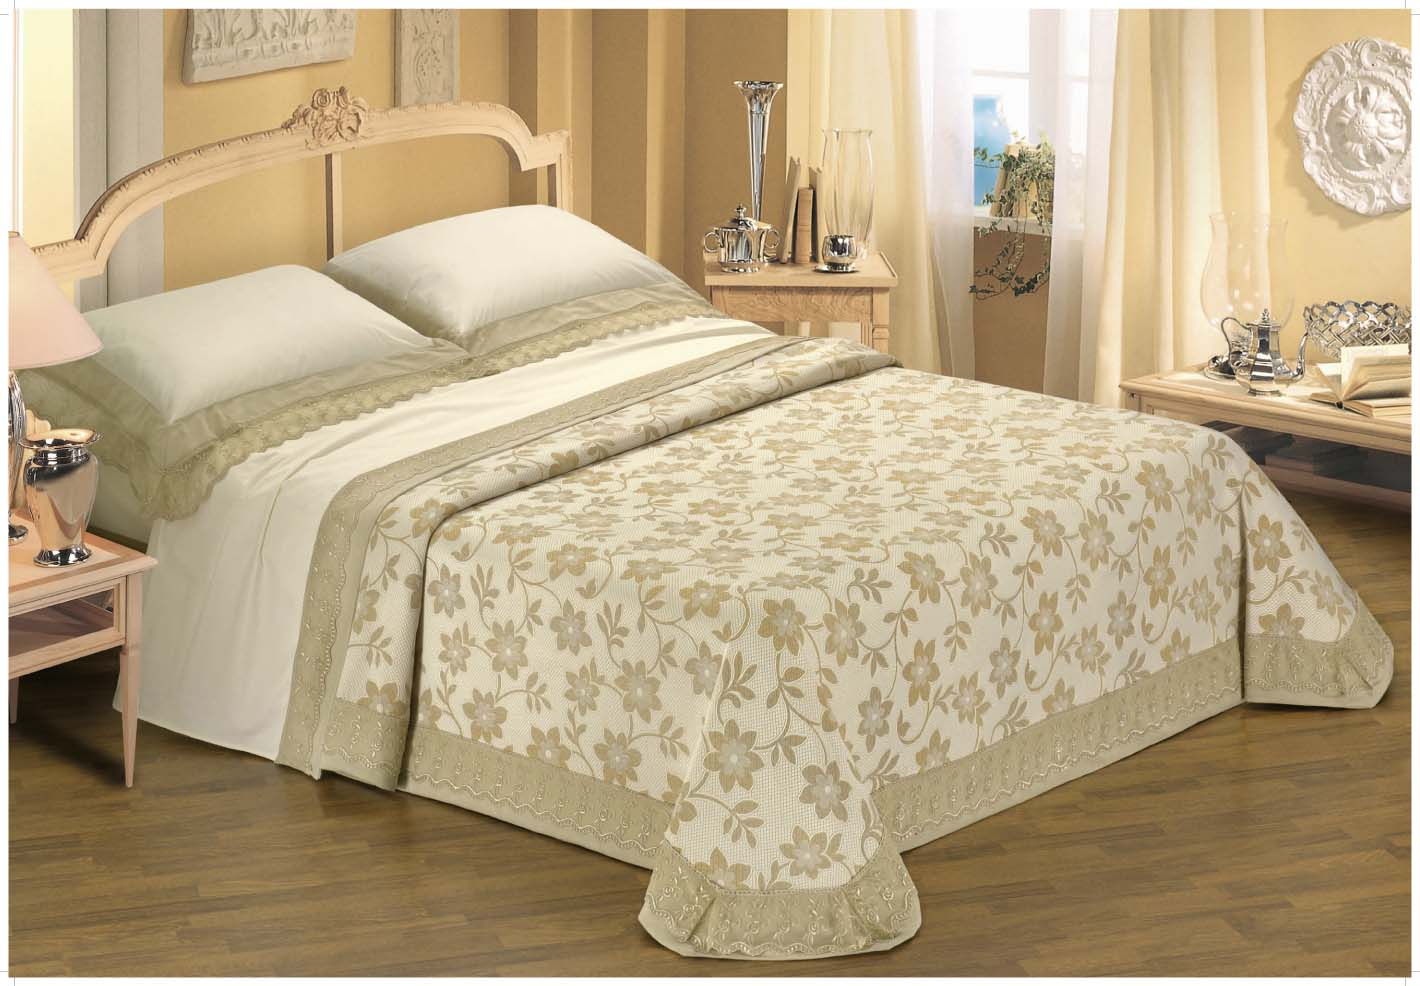 Bed Sheets | Satin Bed Sheets | Stain Sheets | Bed Sheet Designs ...